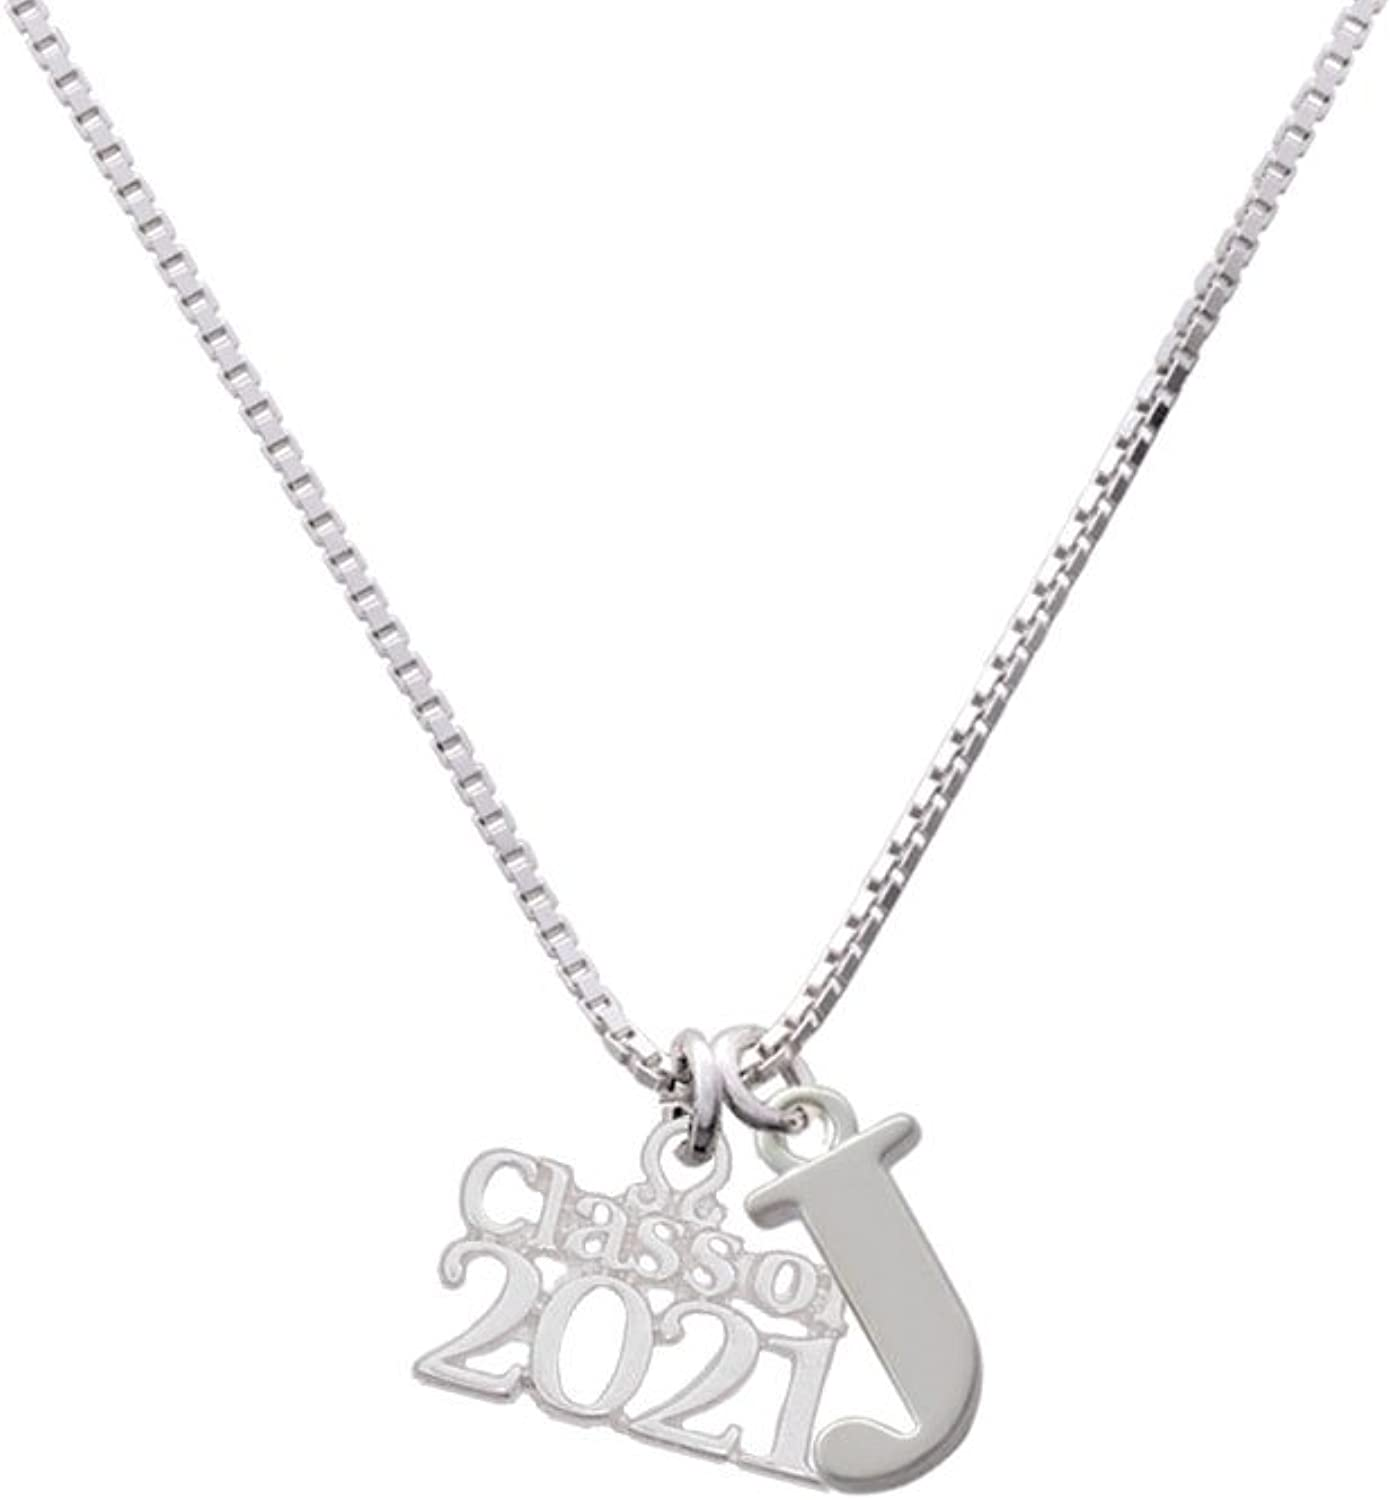 Delight Jewelry Class of 2021 - Capital Initial Necklace